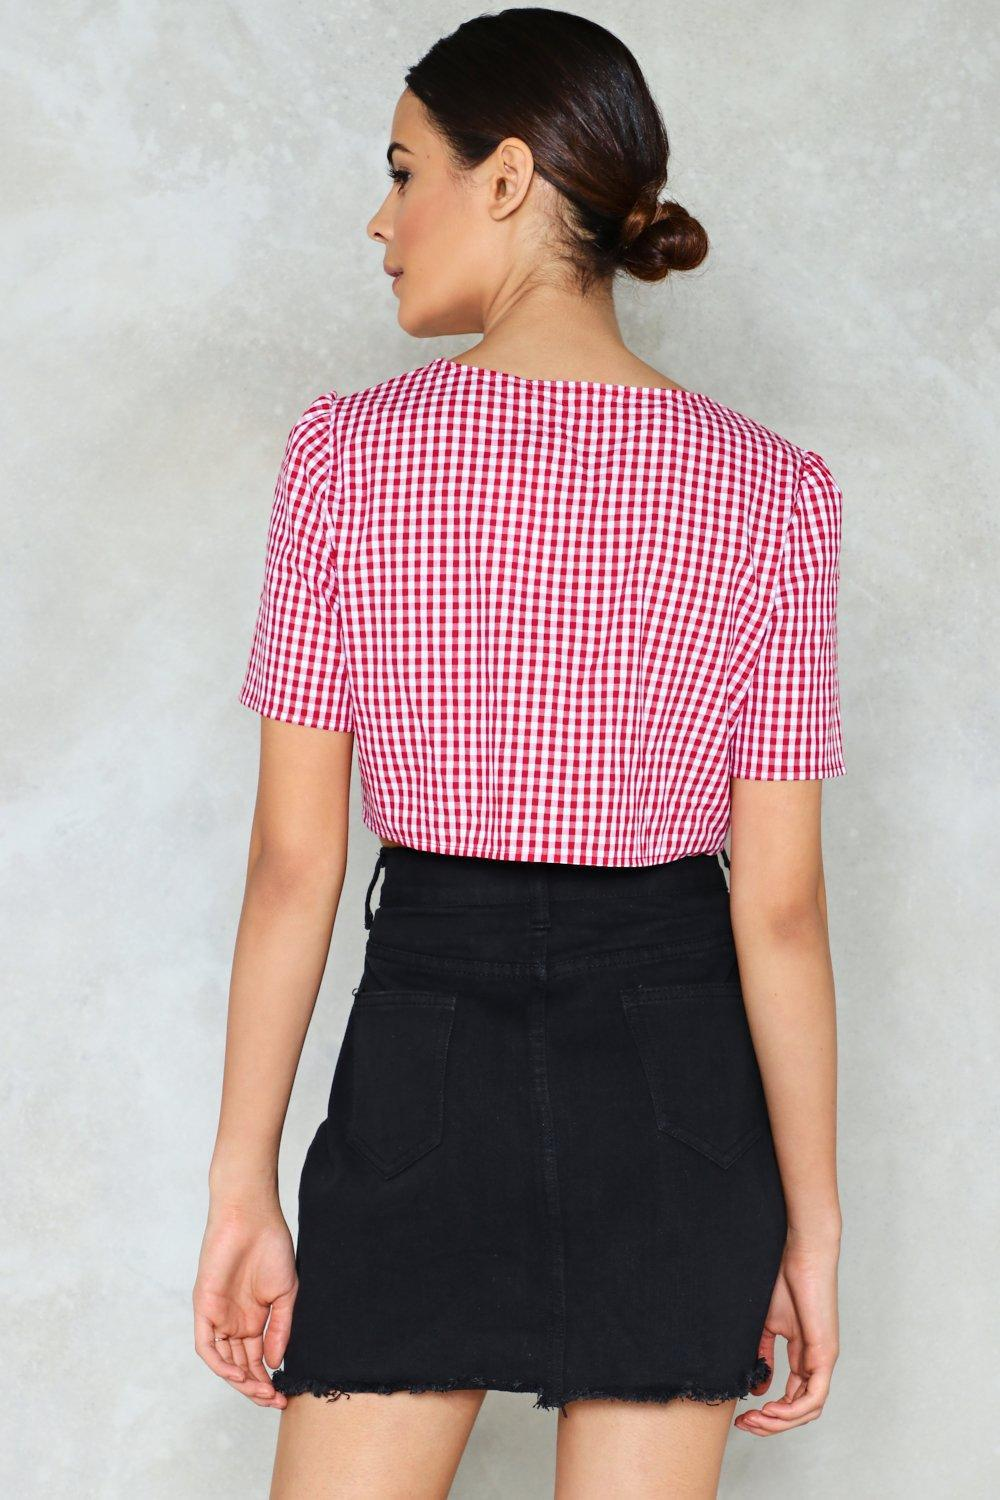 49b1030754f038 Nasty Gal Off The Grid Gingham Crop Top in Red - Lyst